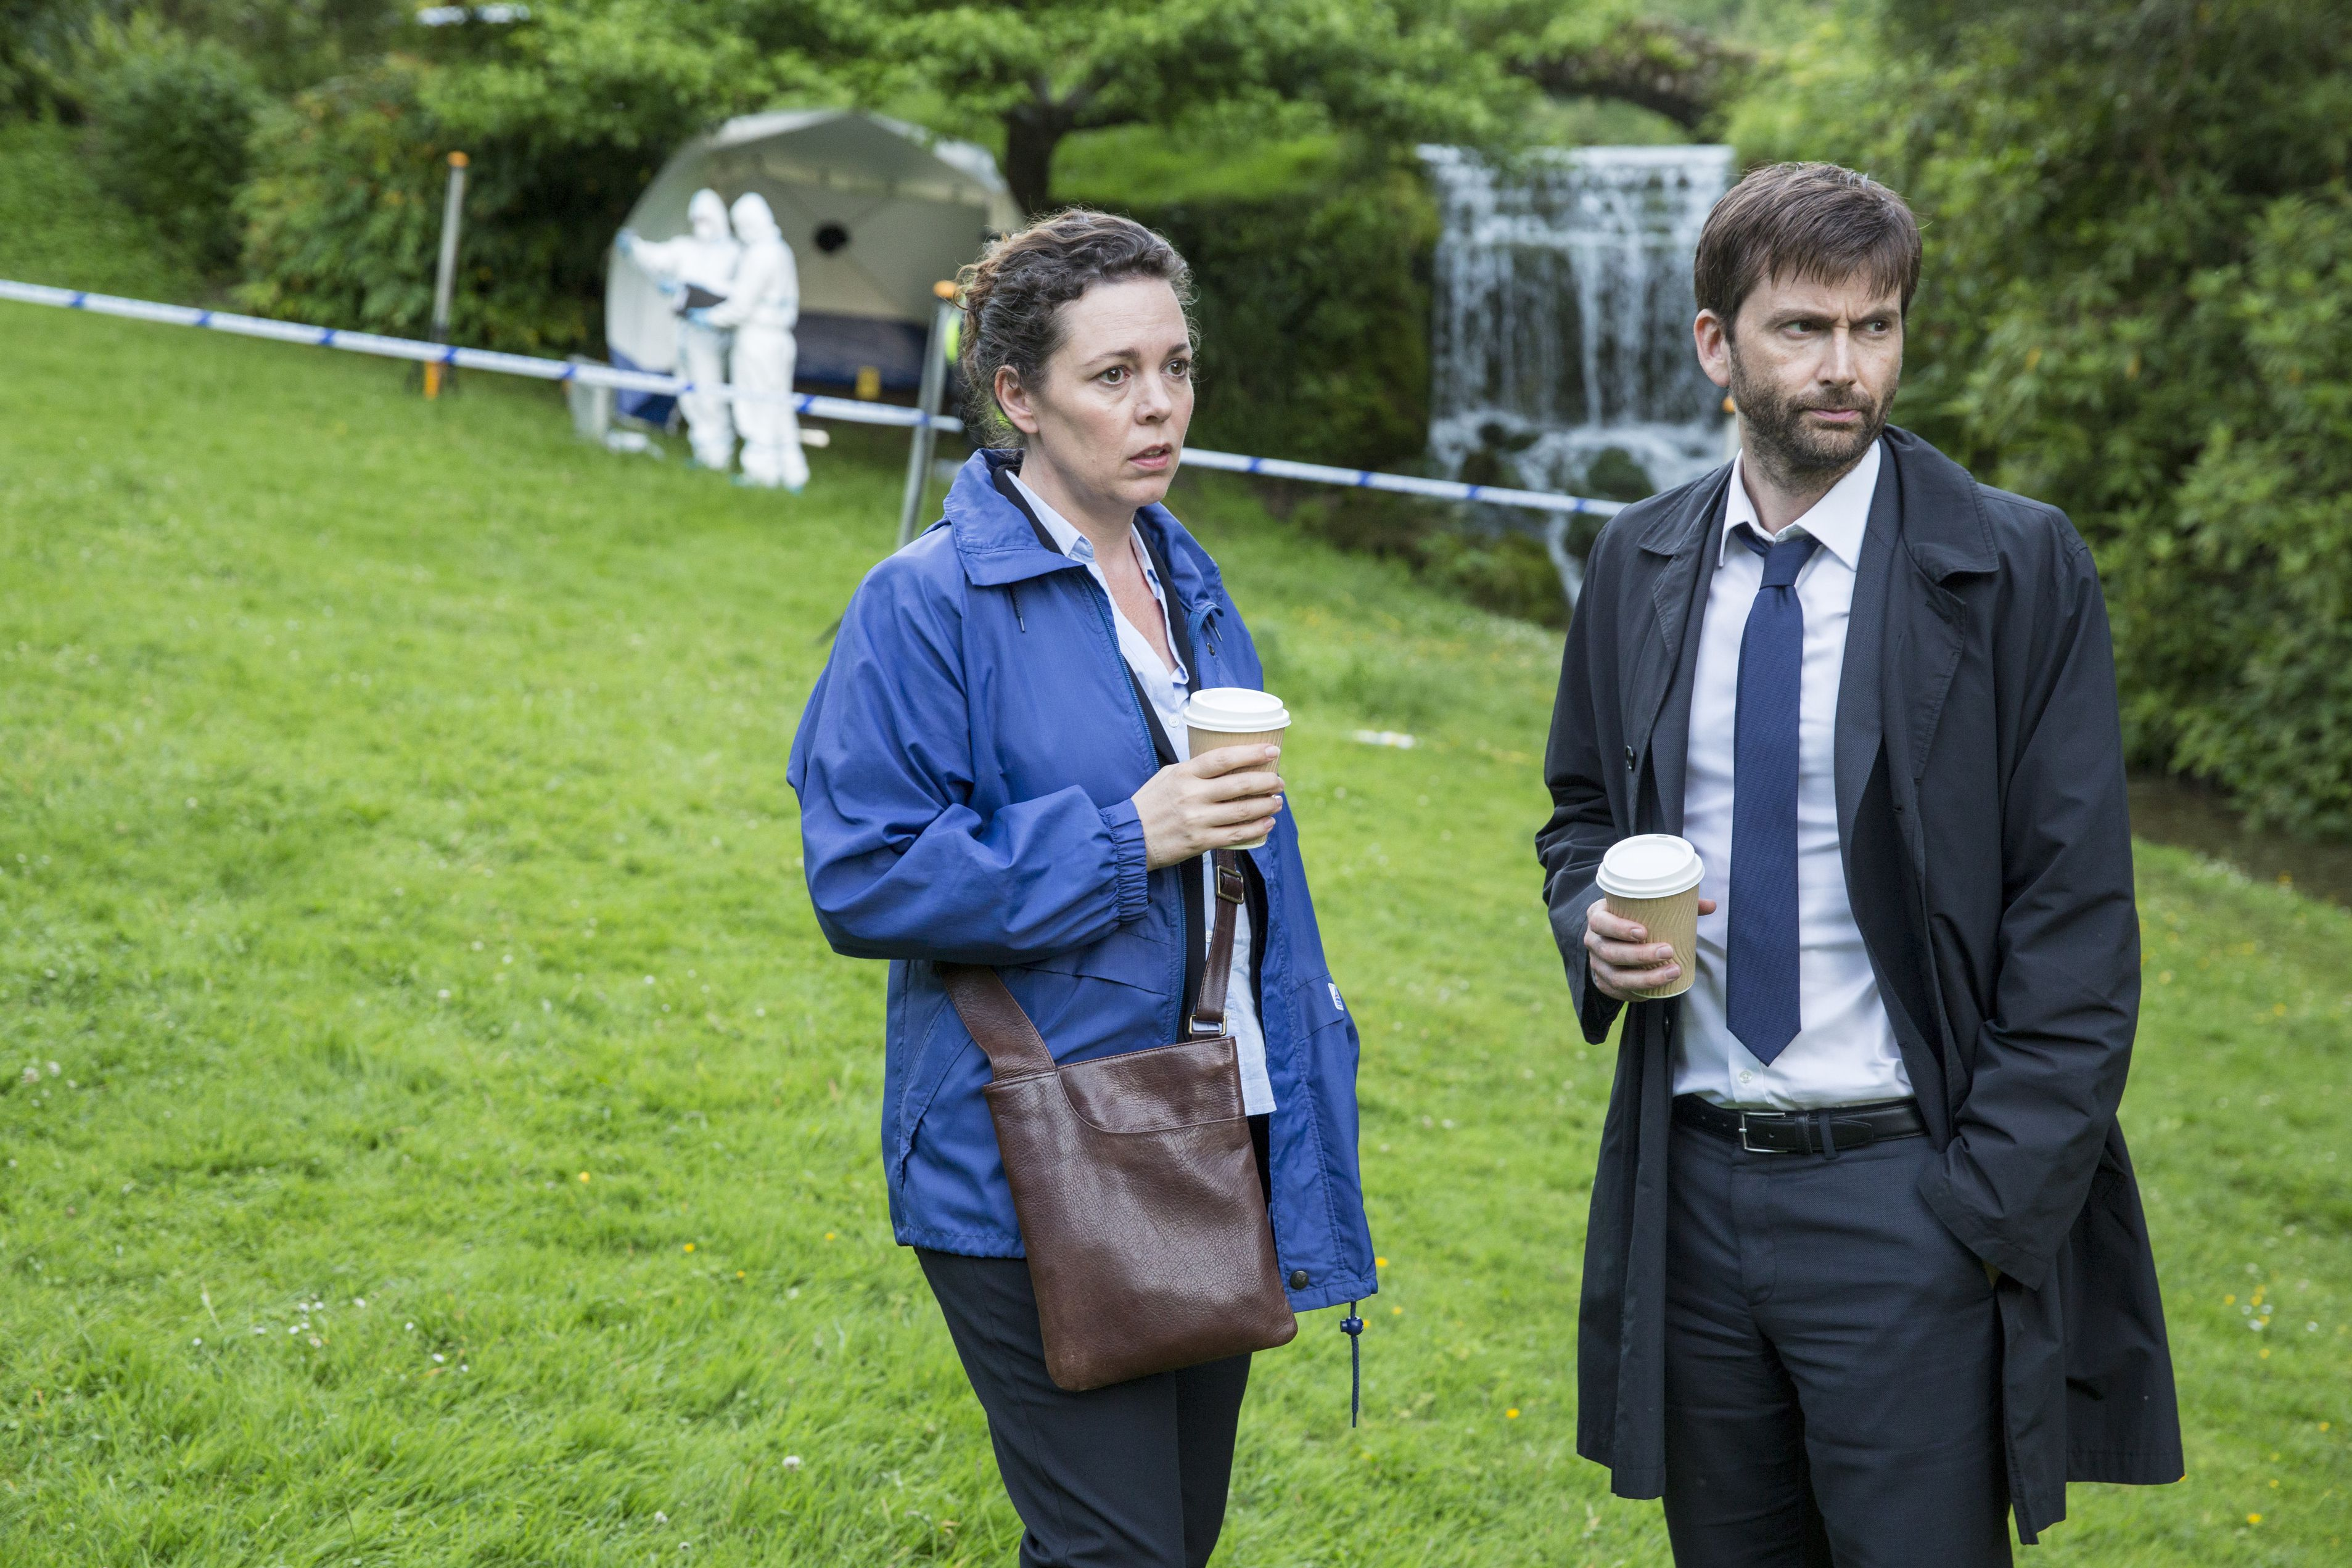 Broadchurch episode two – Here are the latest clues to who attacked Trish